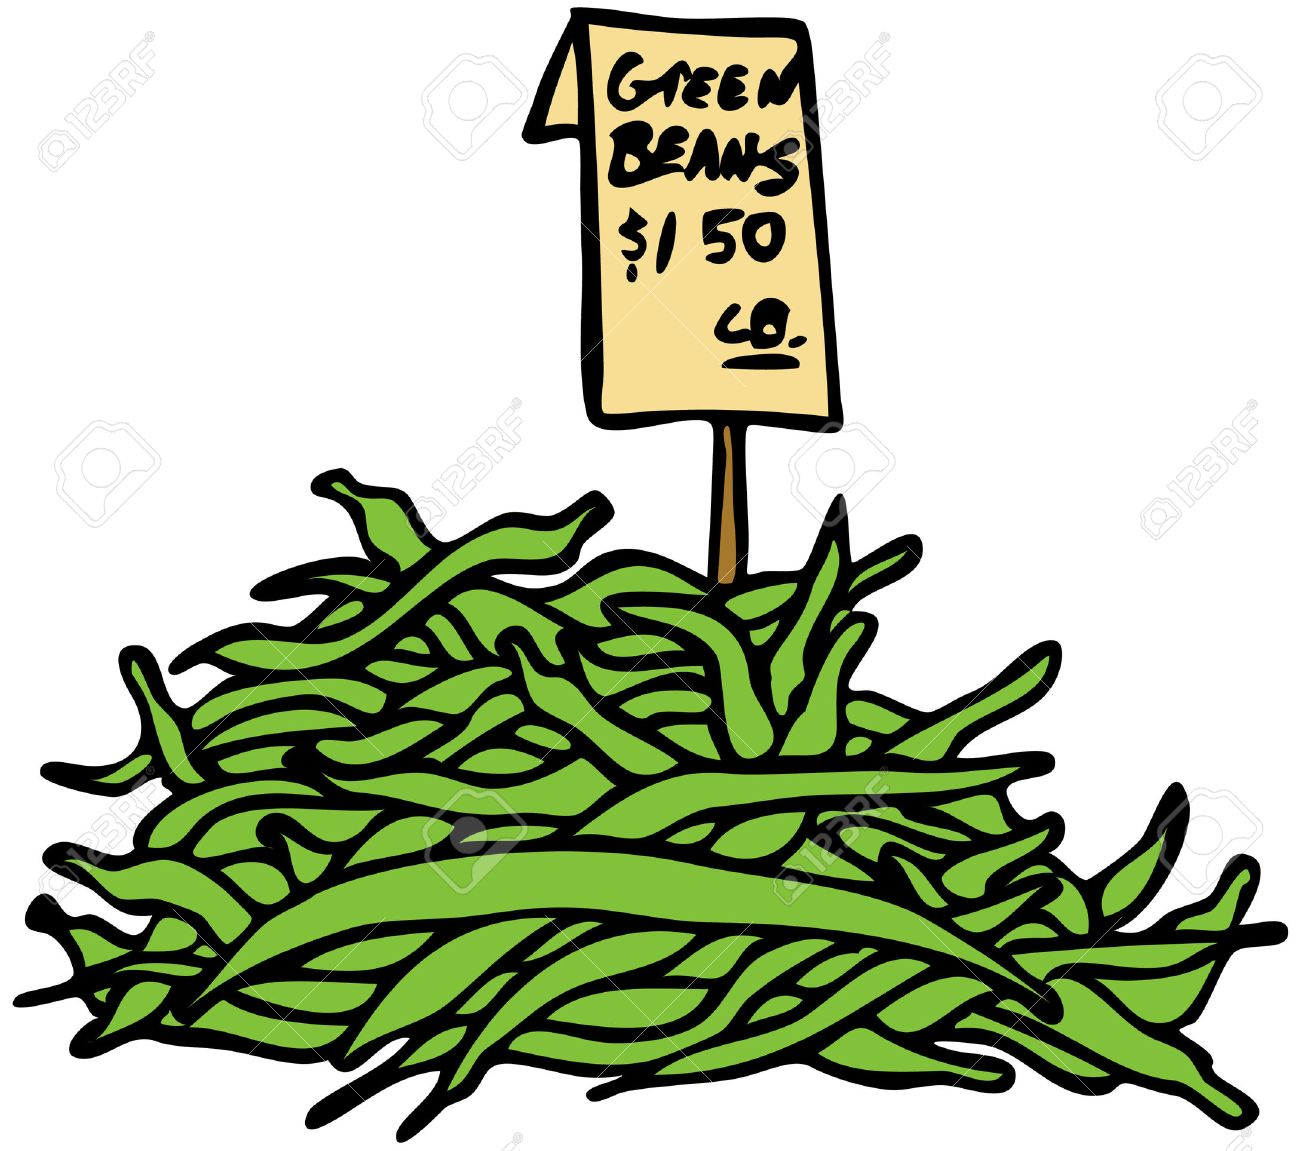 An image of green beans. Stock Vector - 8130354